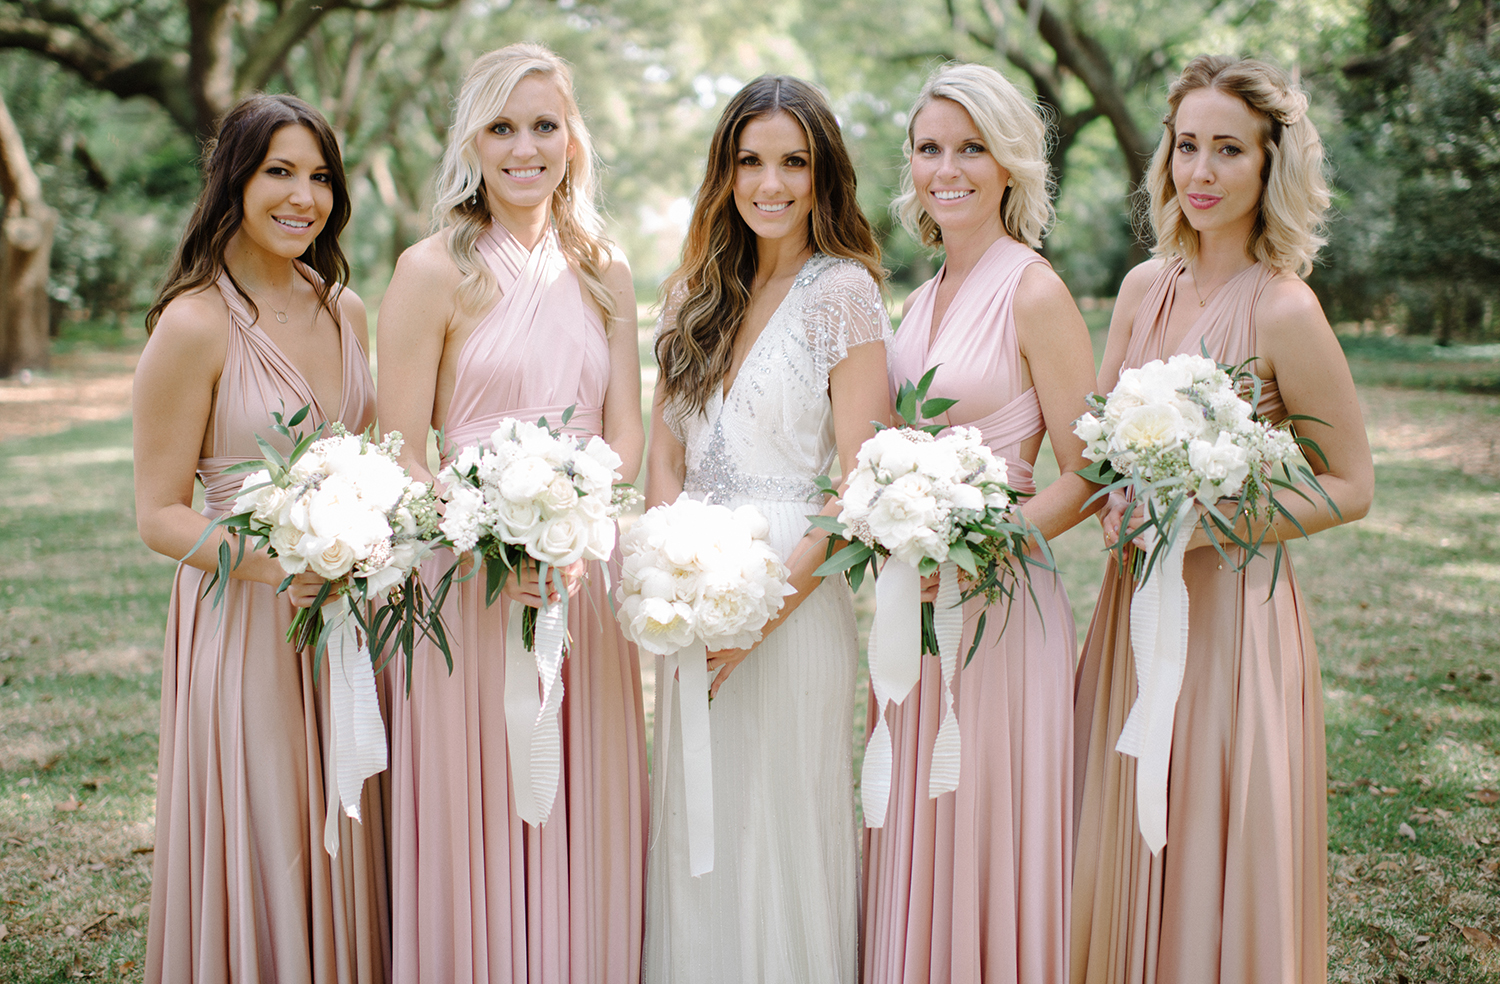 Bella Charleston Bride Erica and her stunning bridesmaids in twobirds. Photo by Sean Money and Elizabeth Fay.